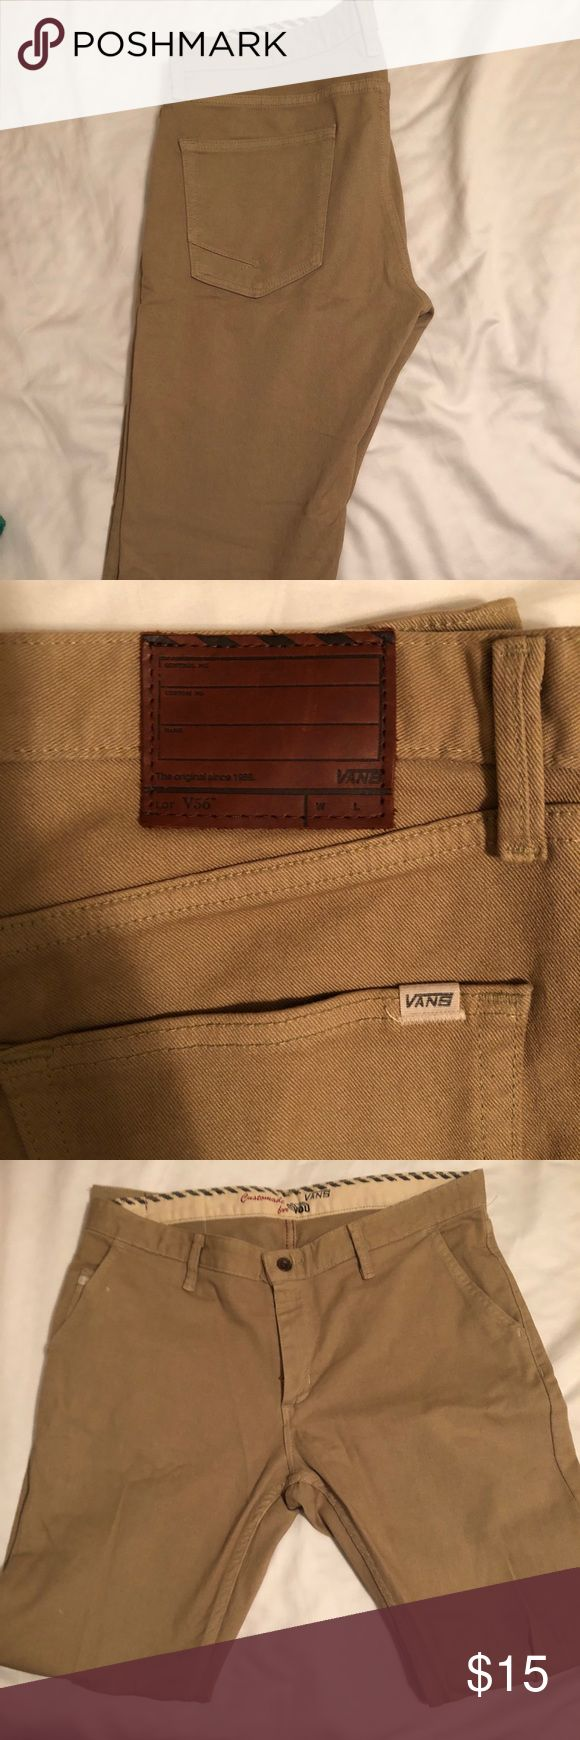 Vans V56 Chinos Tan chinos. Hardly worn. 34x32 Vans Pants Chinos & Khakis